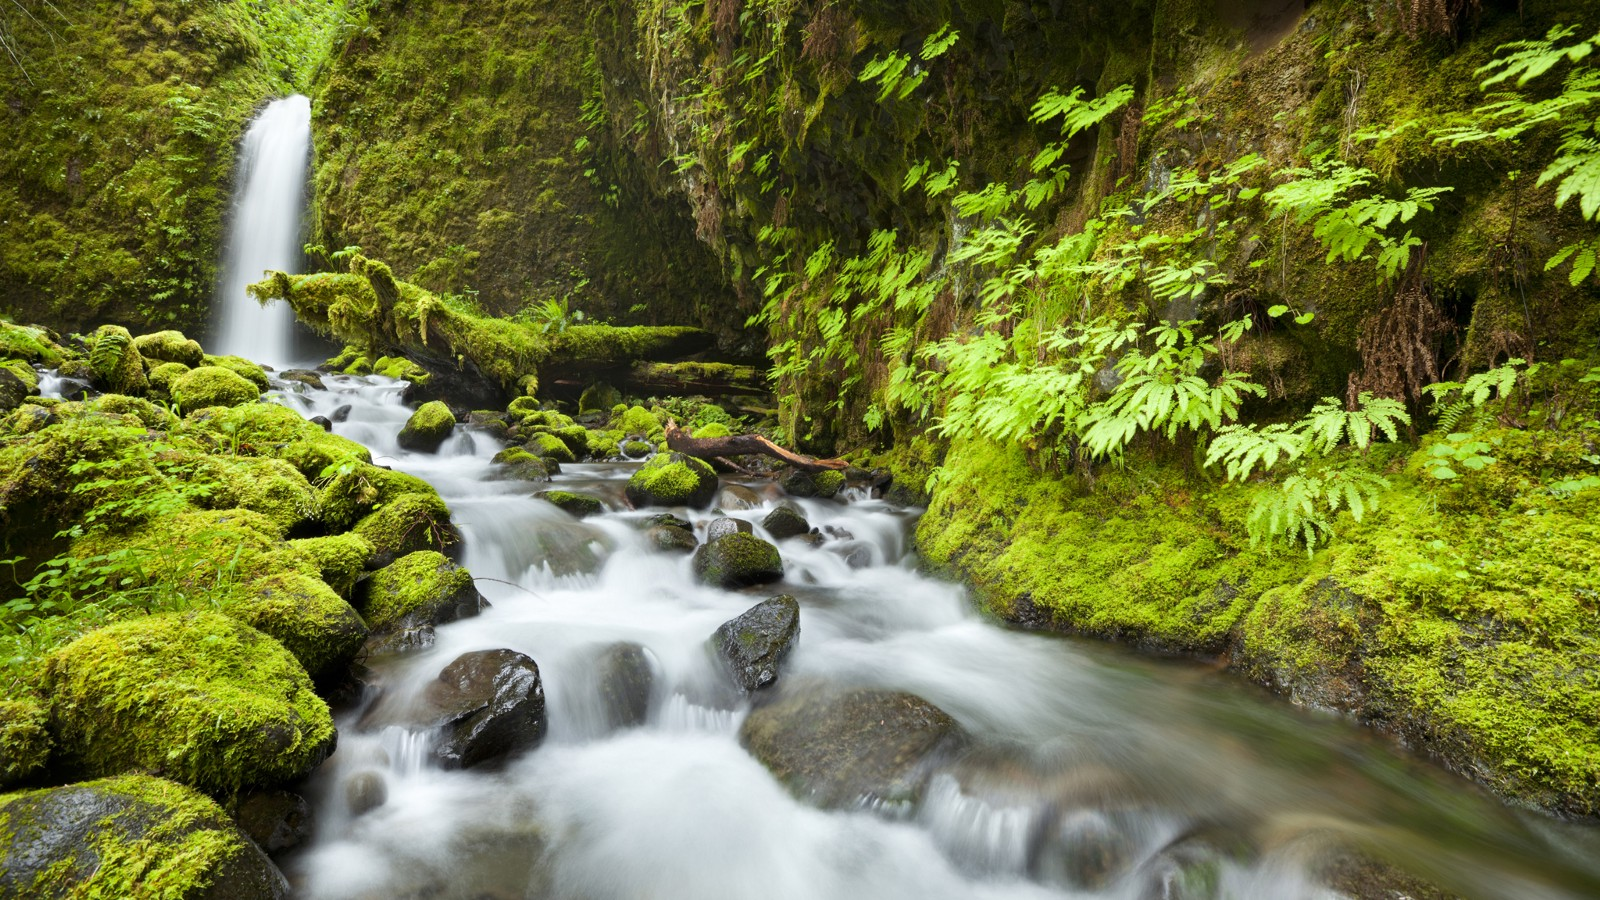 Remote waterfall in the backcountry of the Columbia River Gorge, Oregon